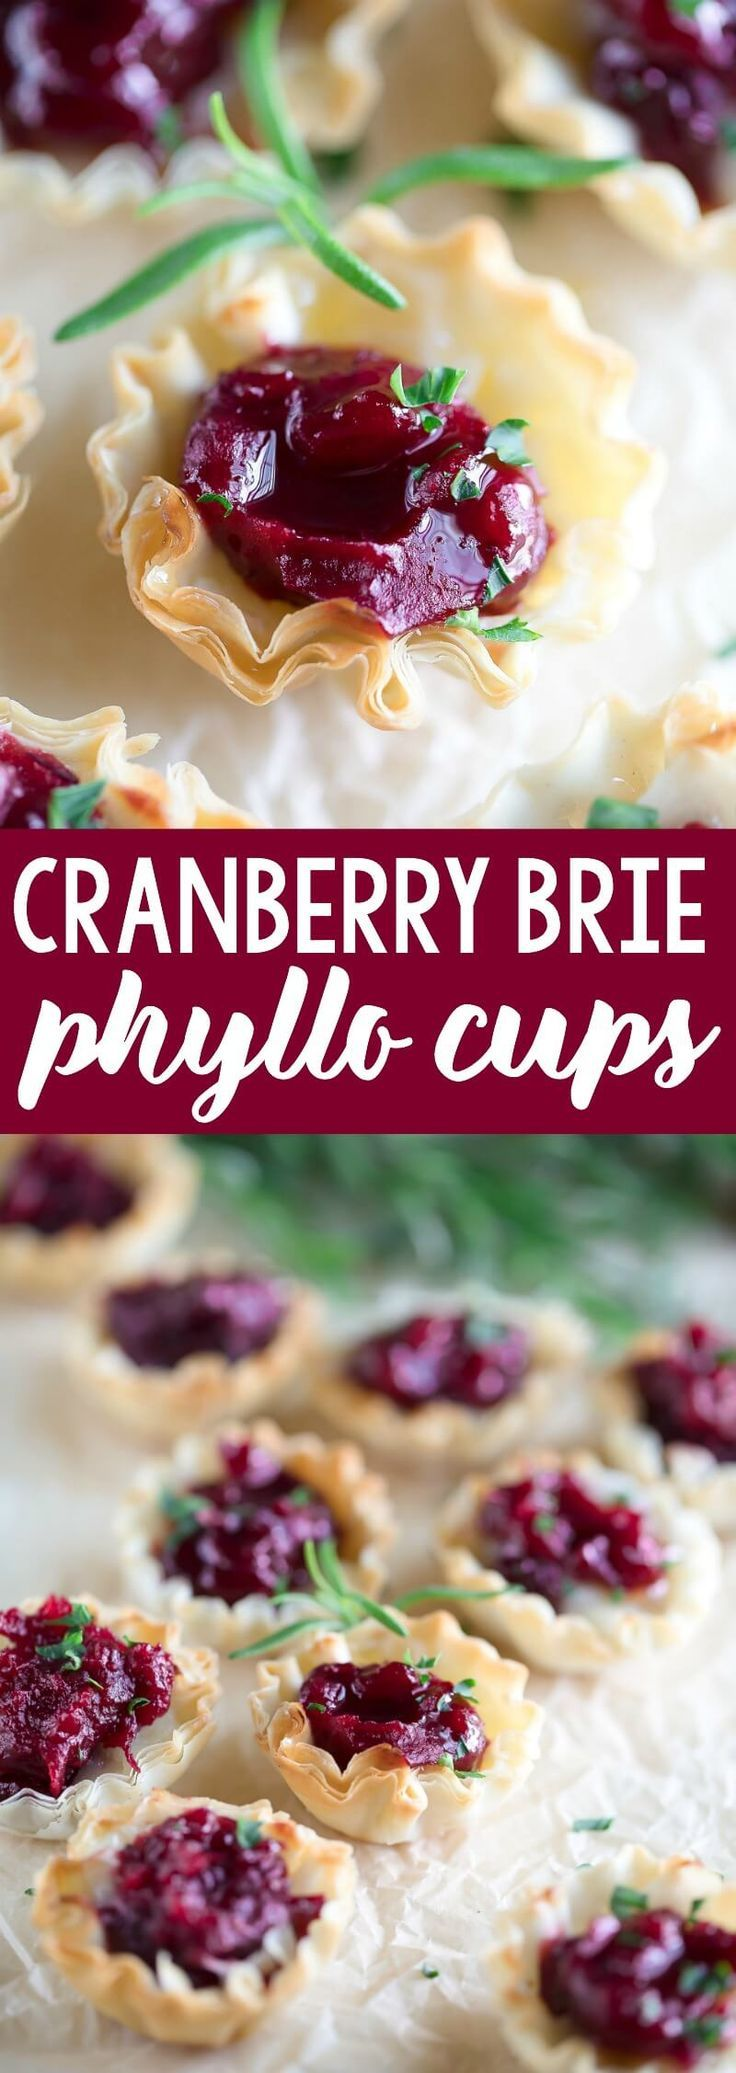 Cranberry Brie Phyllo Cups - An Easy Appetizer Recipe! Cranberry Brie Phyllo Cups are always a hit!